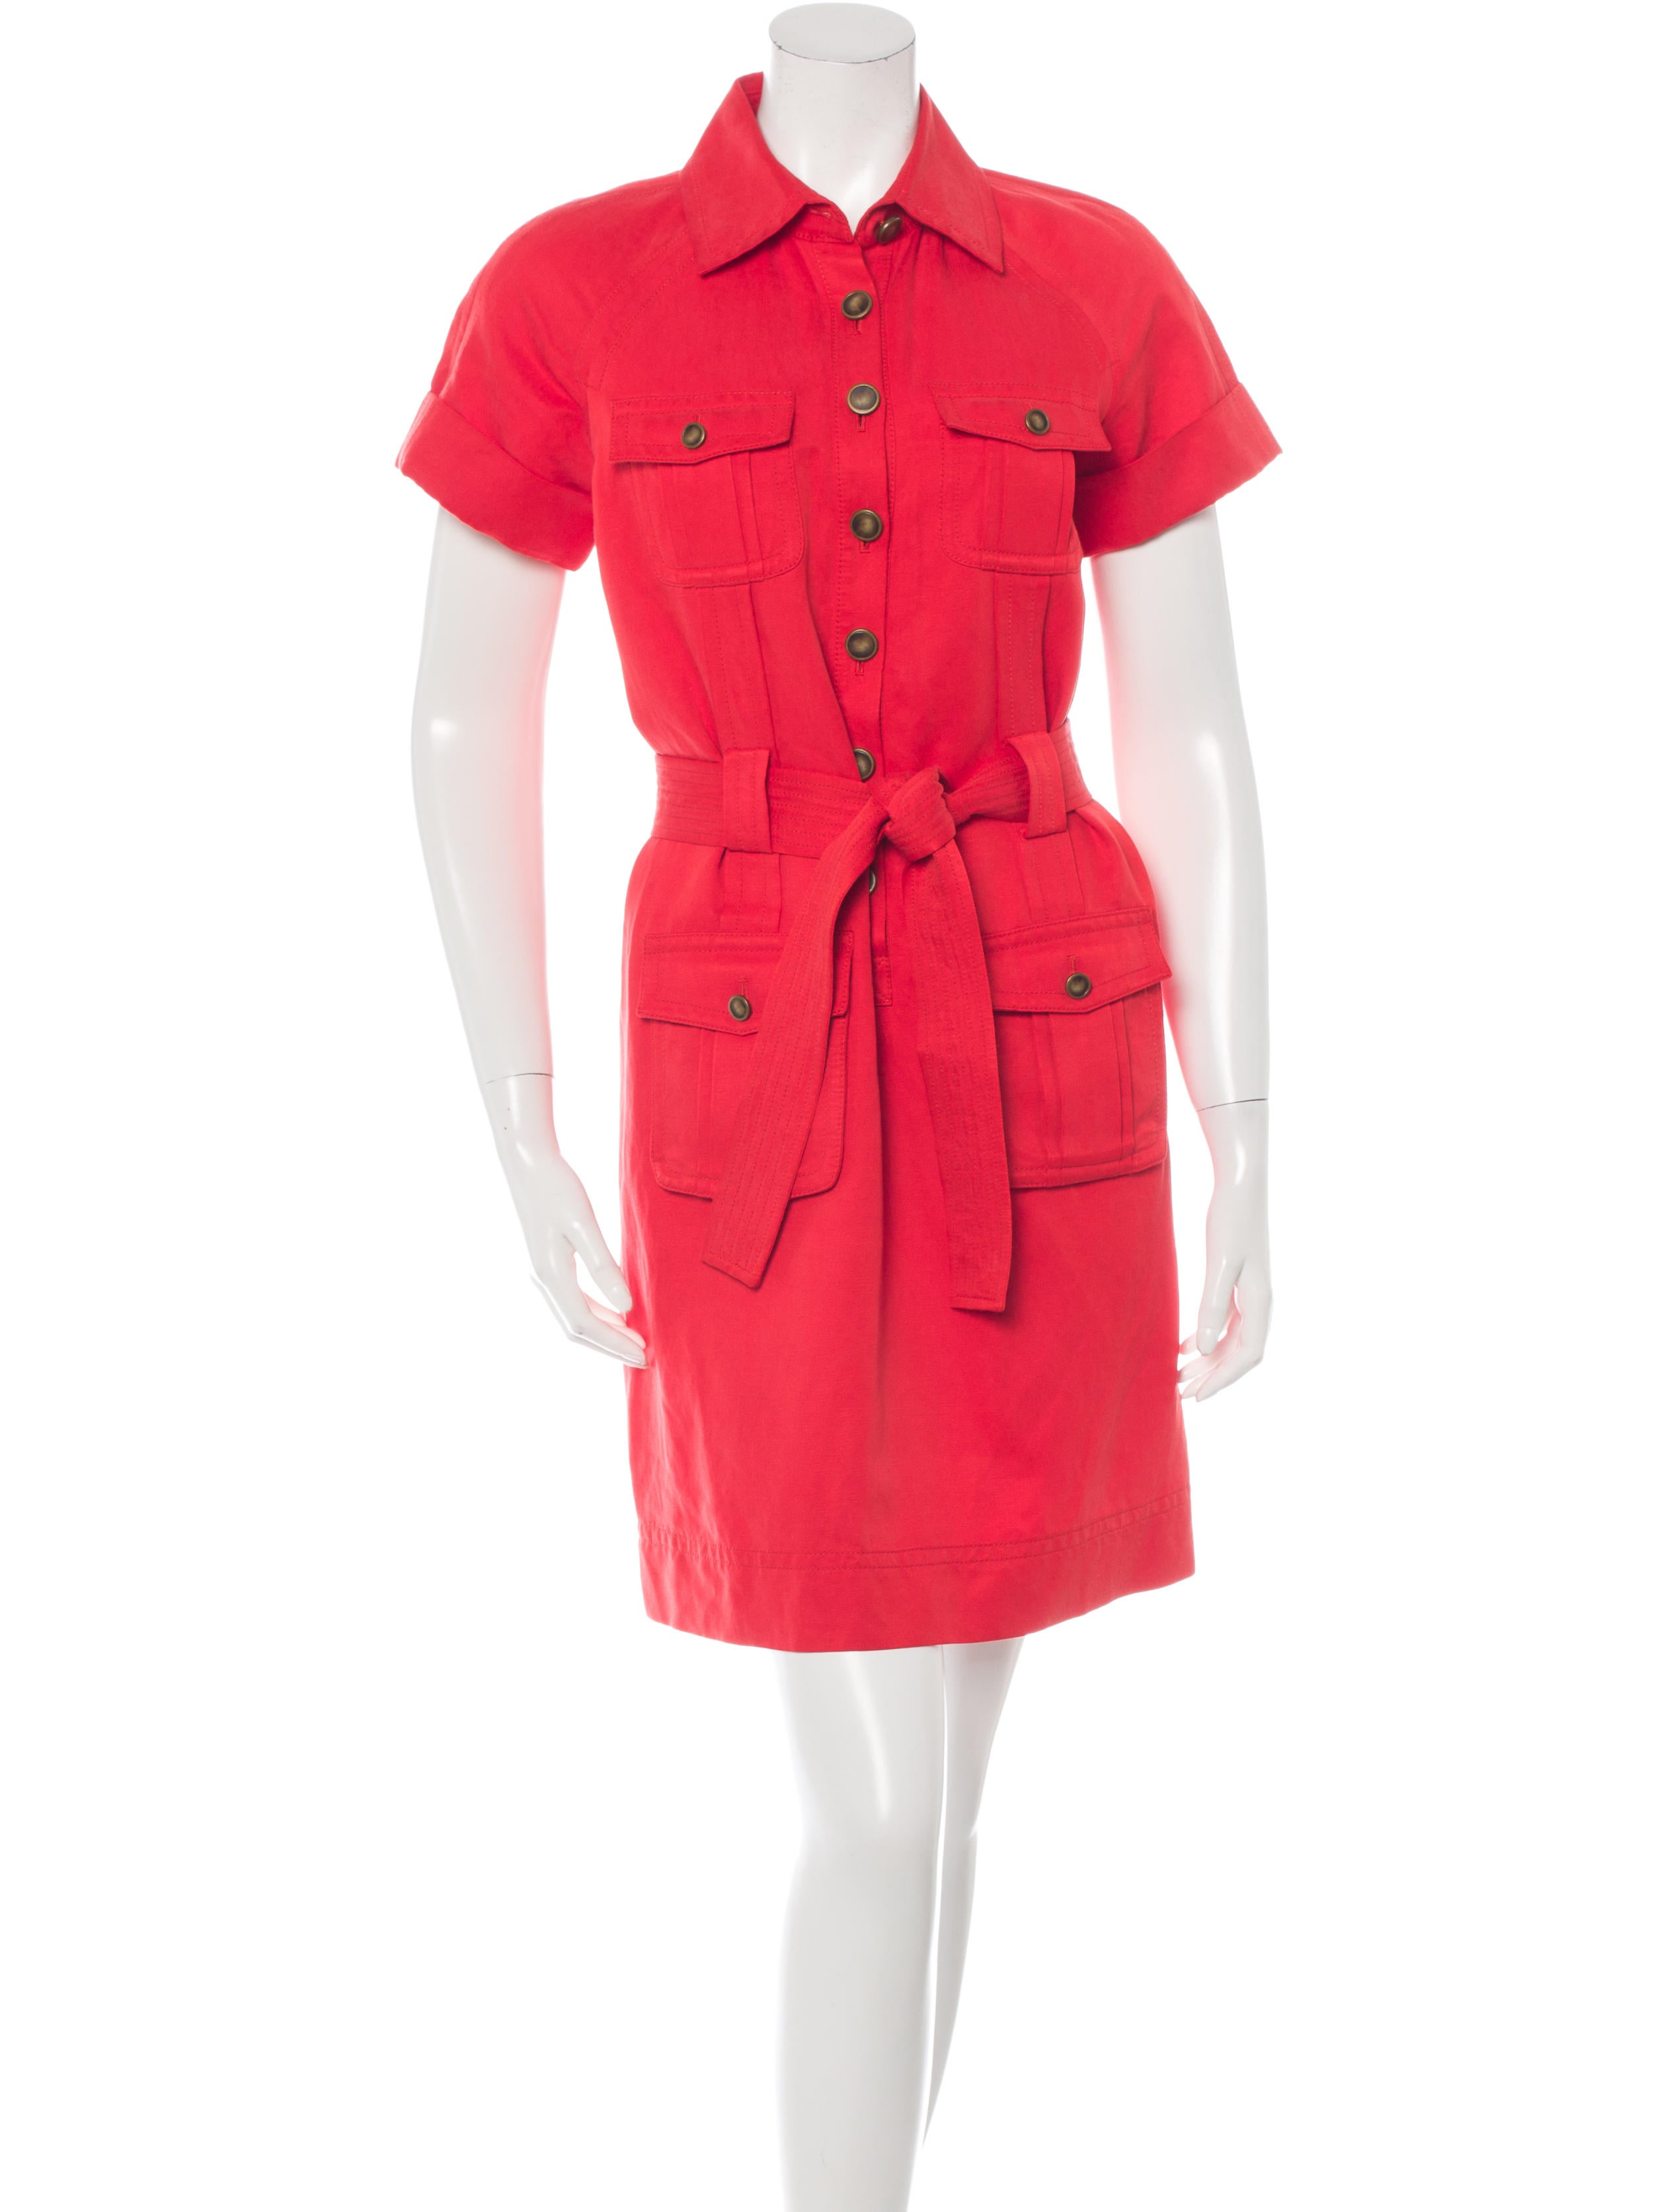 Diane Von Furstenberg Bowman Shirt Dress Clothing